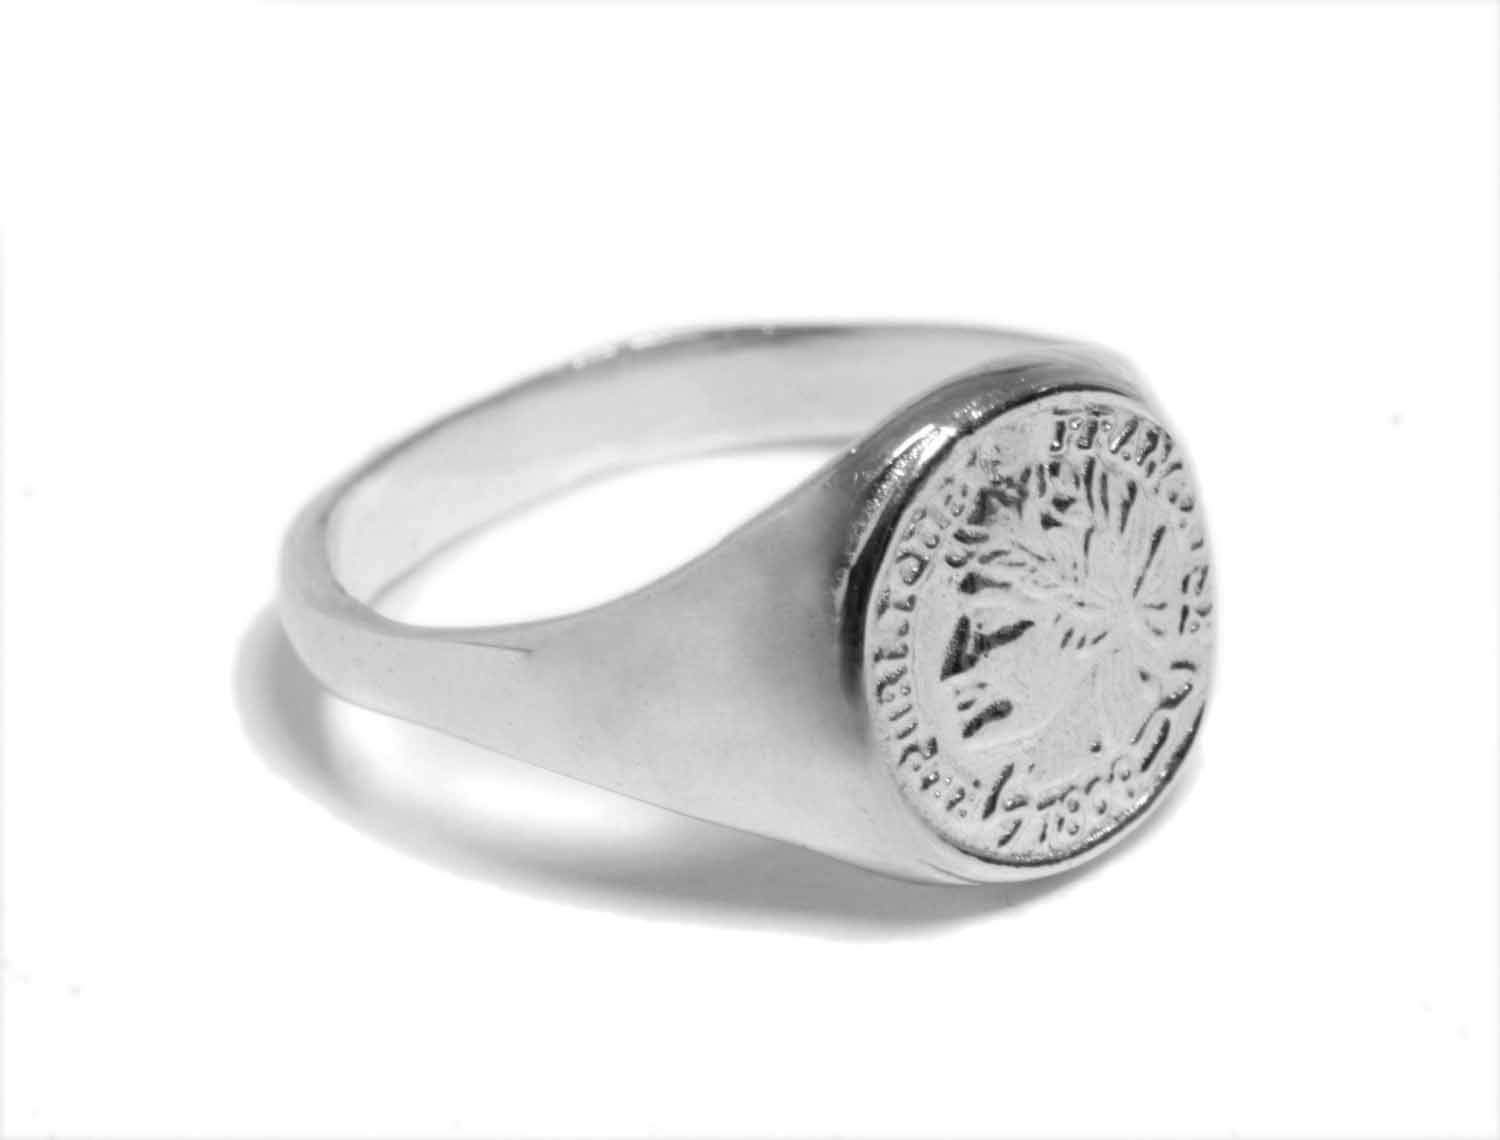 dbff0a1851 Get Quotations · Sterling Silver Coin Signet Ring, French Woman Imprint Seal  Pinky Ring, Handmade Designer,